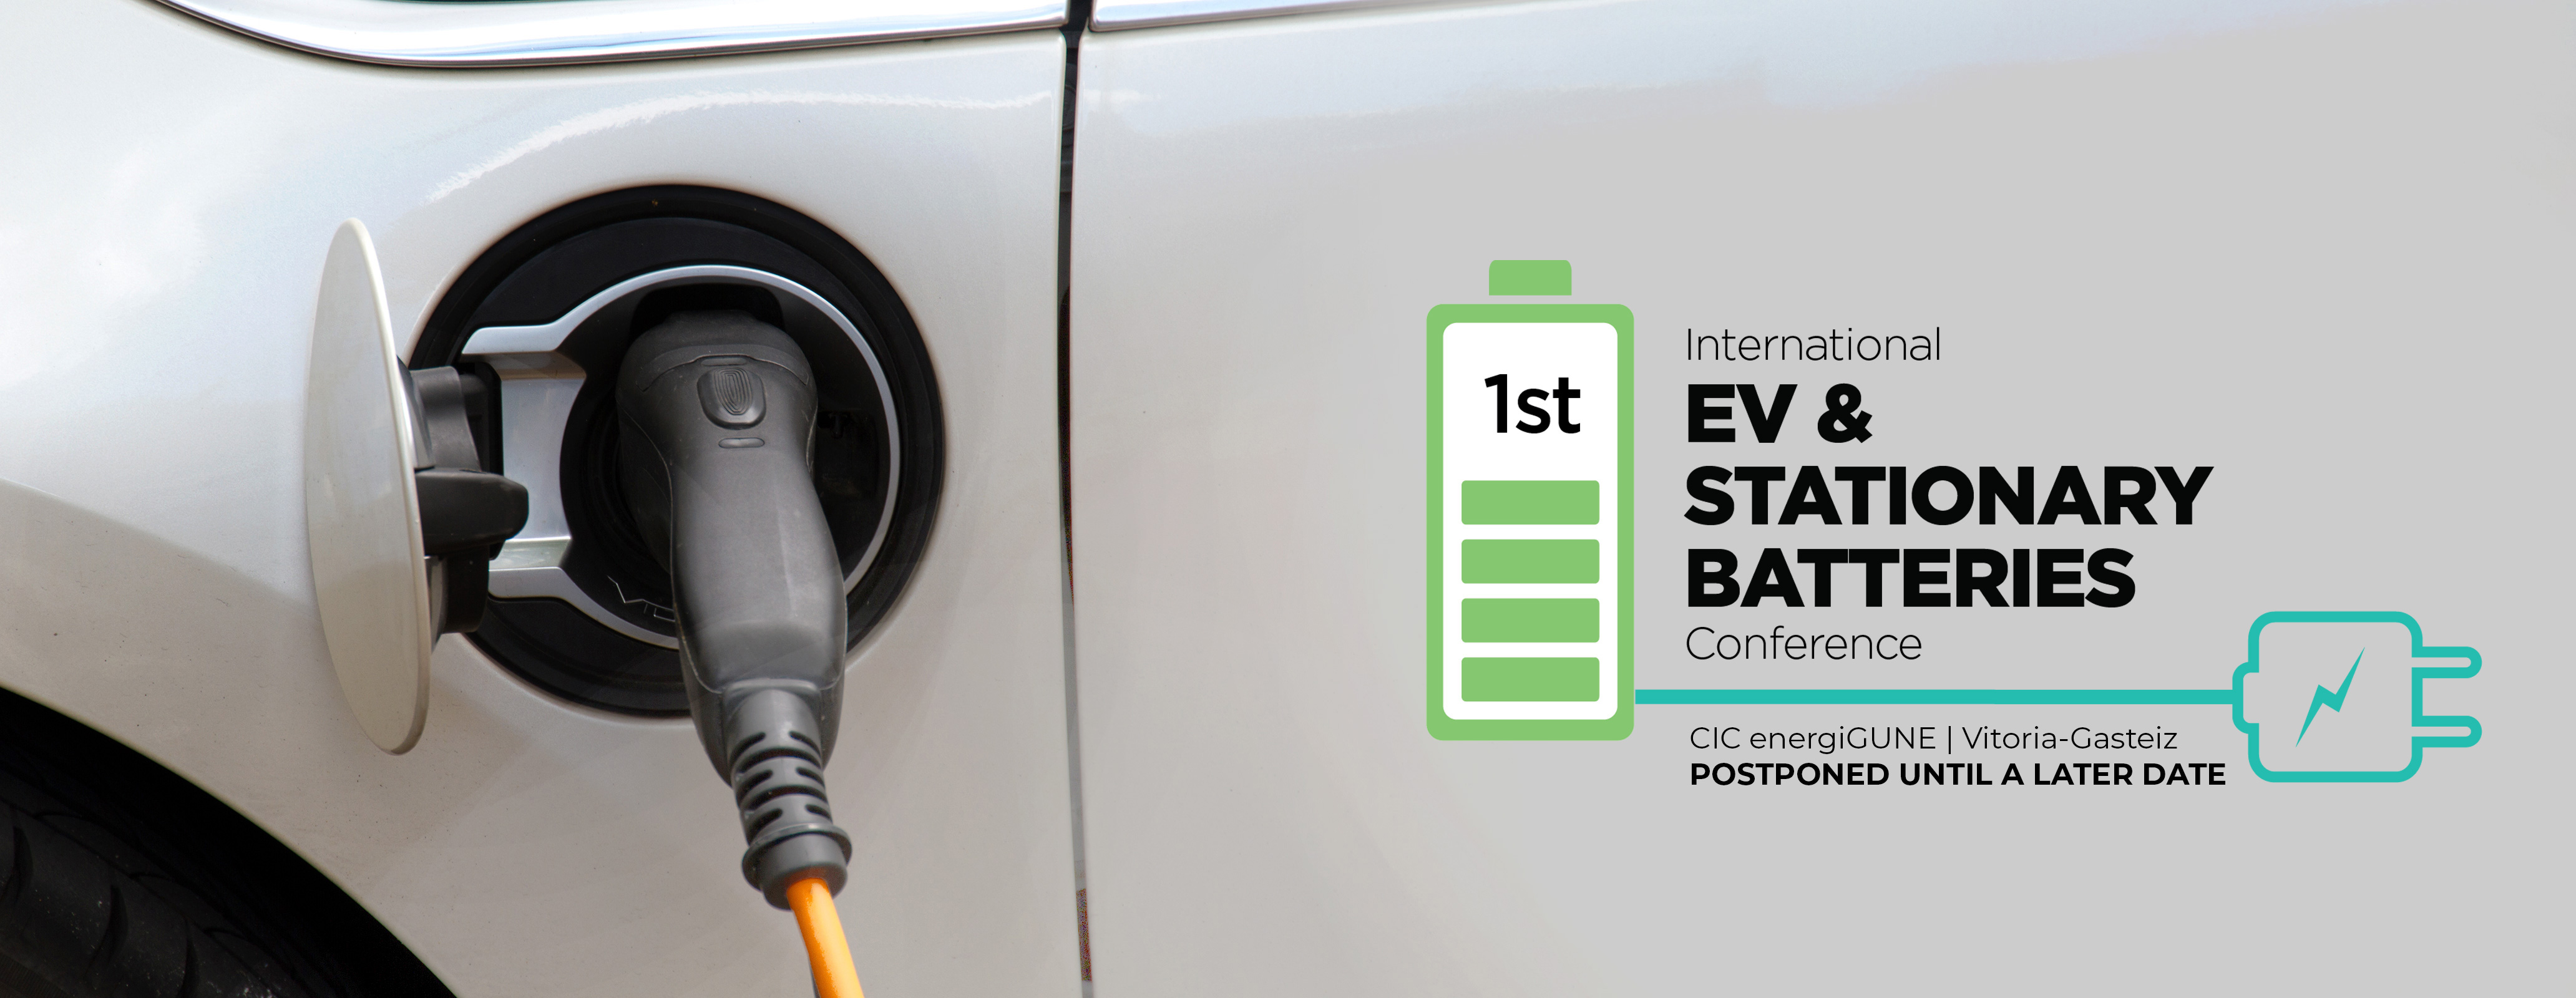 First international electric vehicle & stationary battery conference 2020